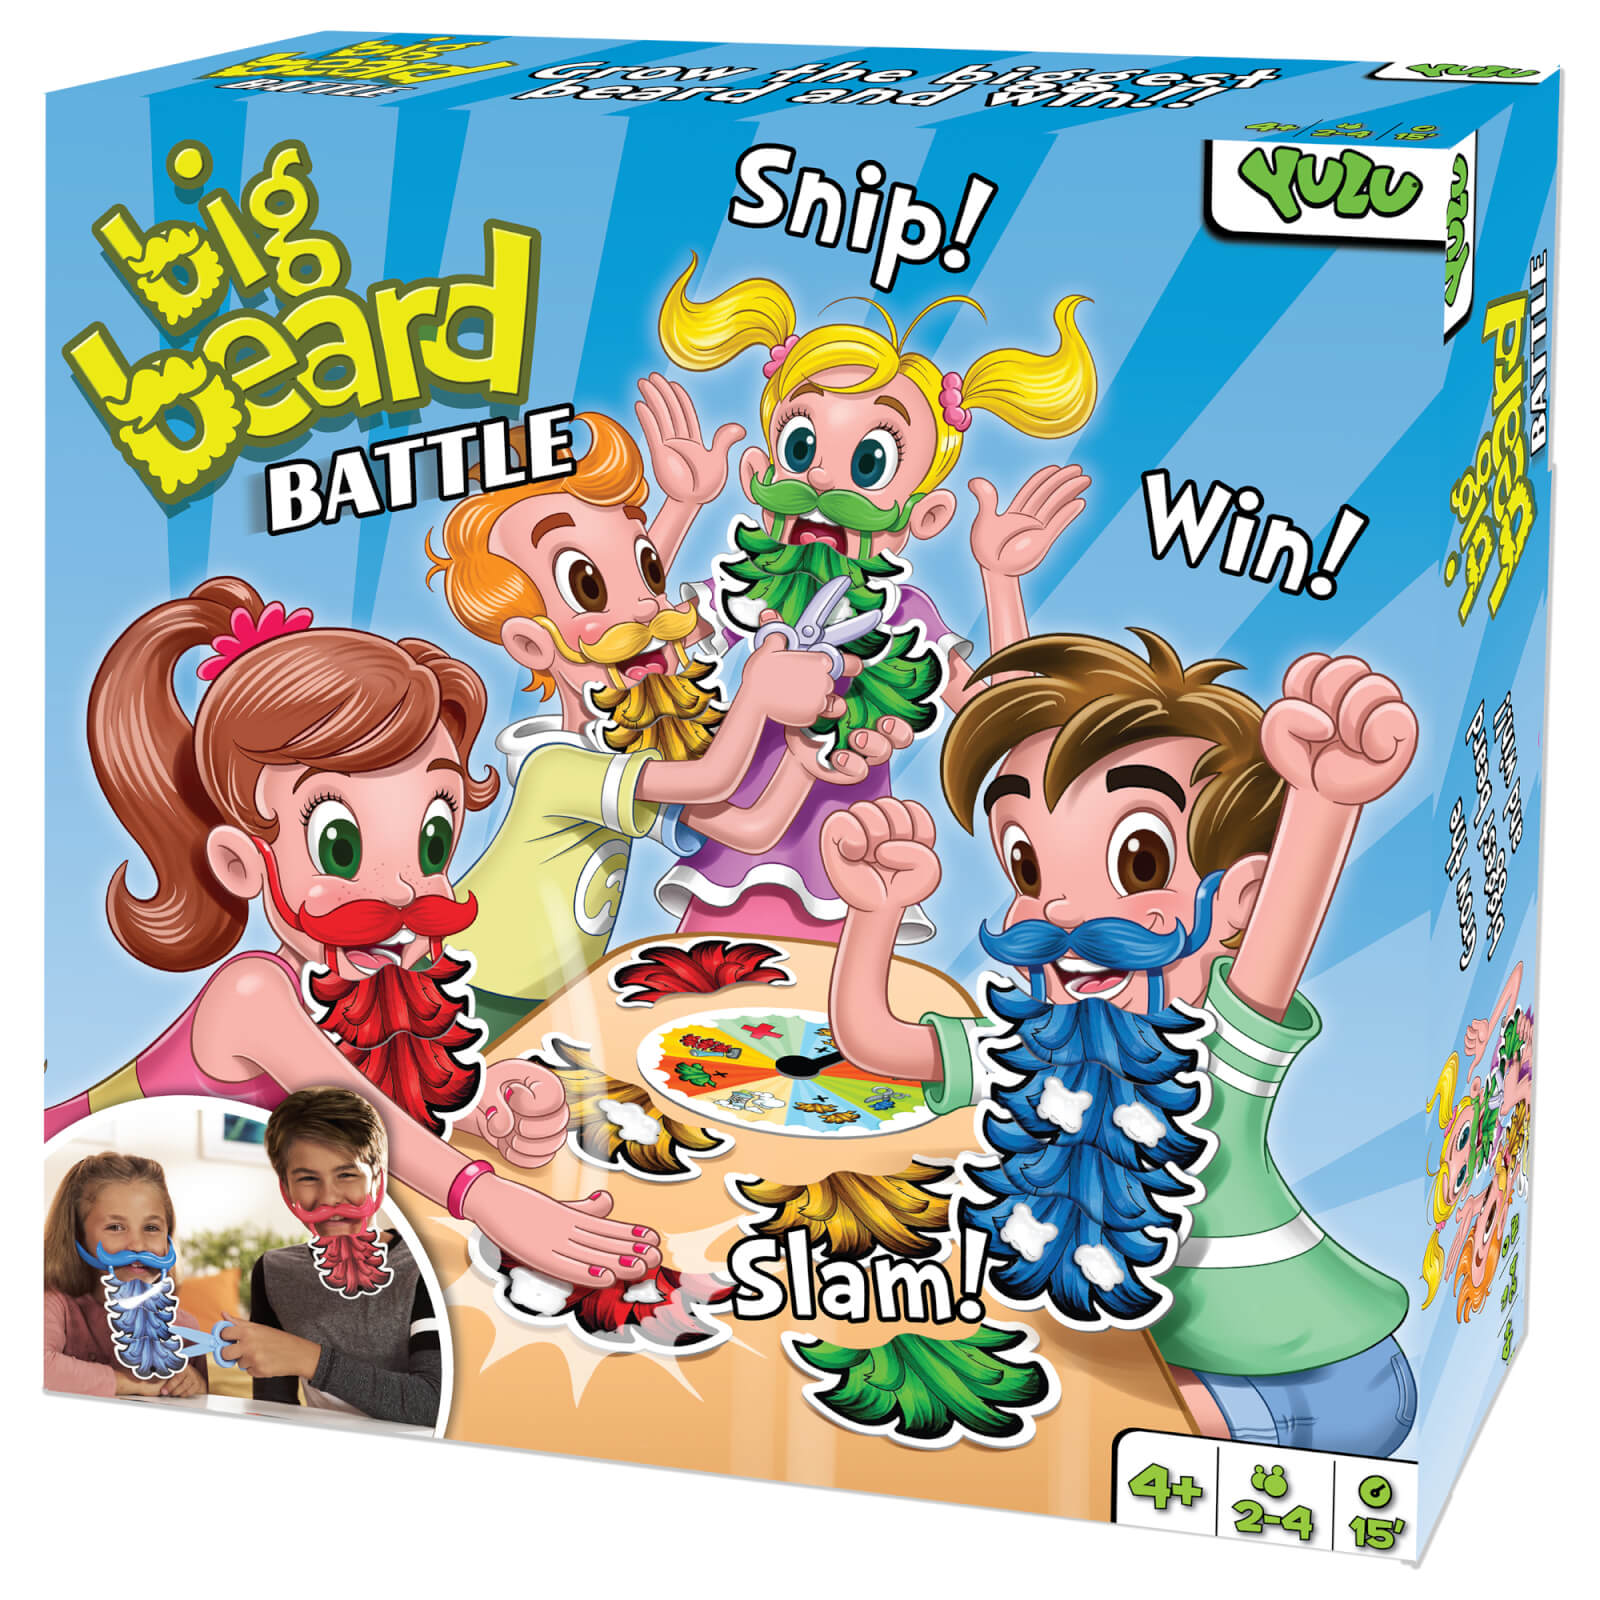 Yulu Big Beard Battle Game